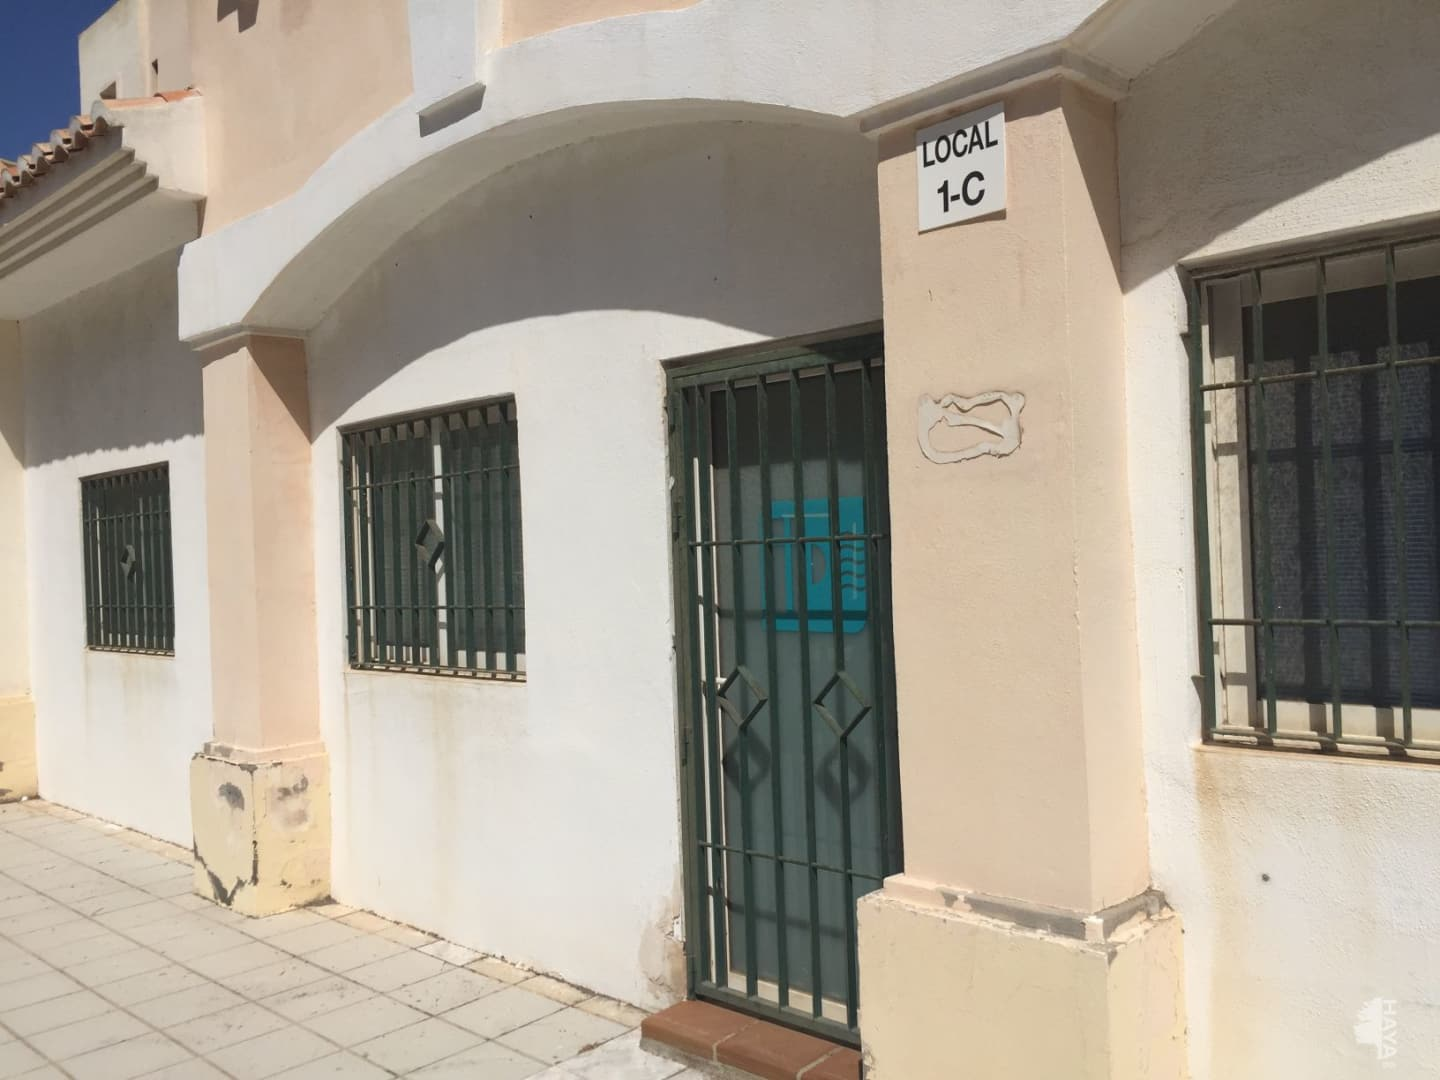 Local en venta en Playa Serena, Roquetas de Mar, Almería, Paseo Central, 84.300 €, 75 m2